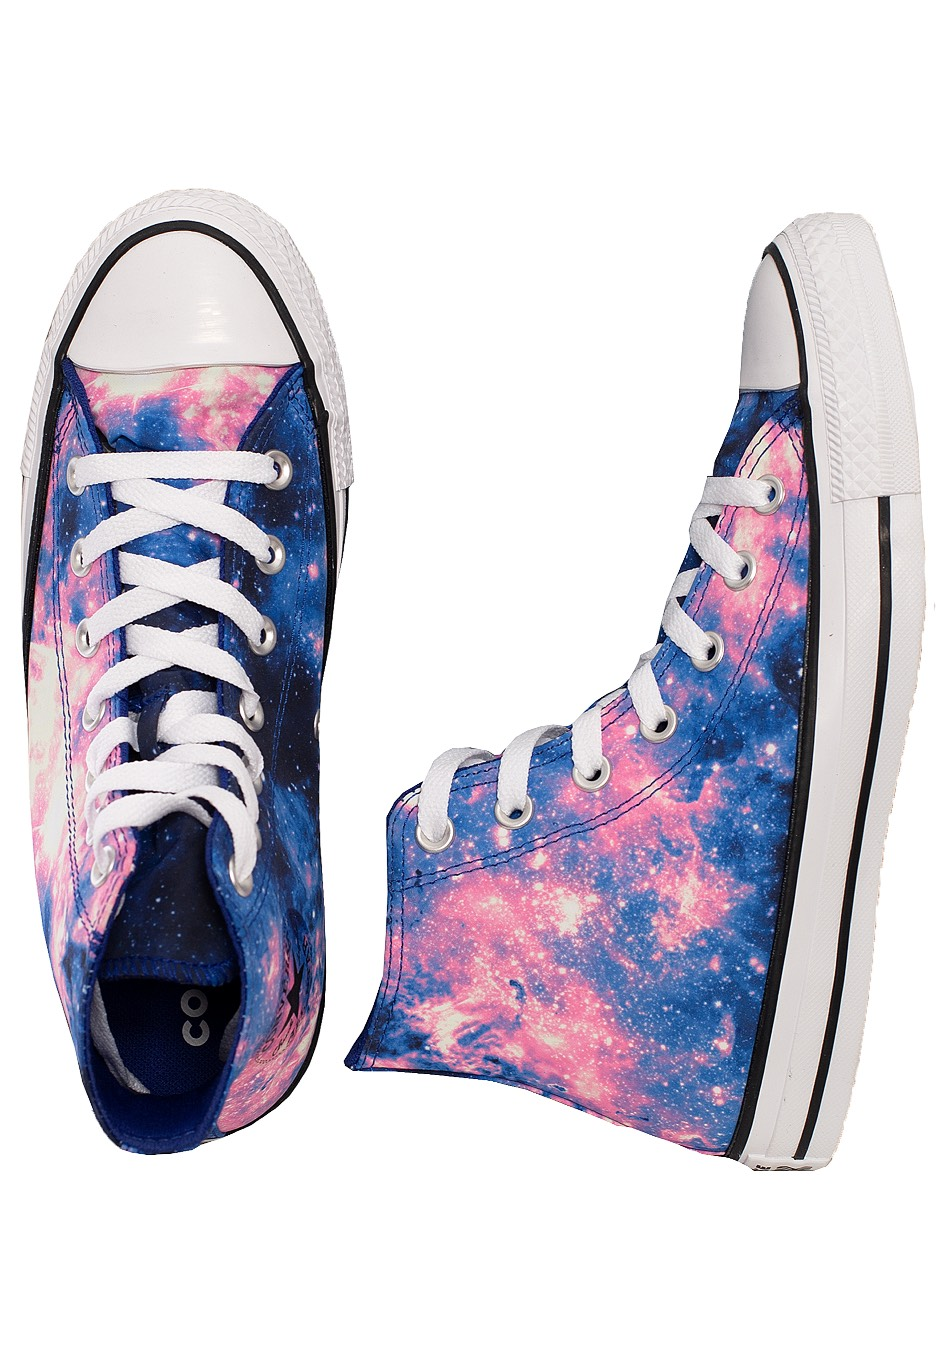 Converse Chuck Taylor All Star Miss Galaxy Hi Lapis BlueBlackBarely Rose Girl Shoes